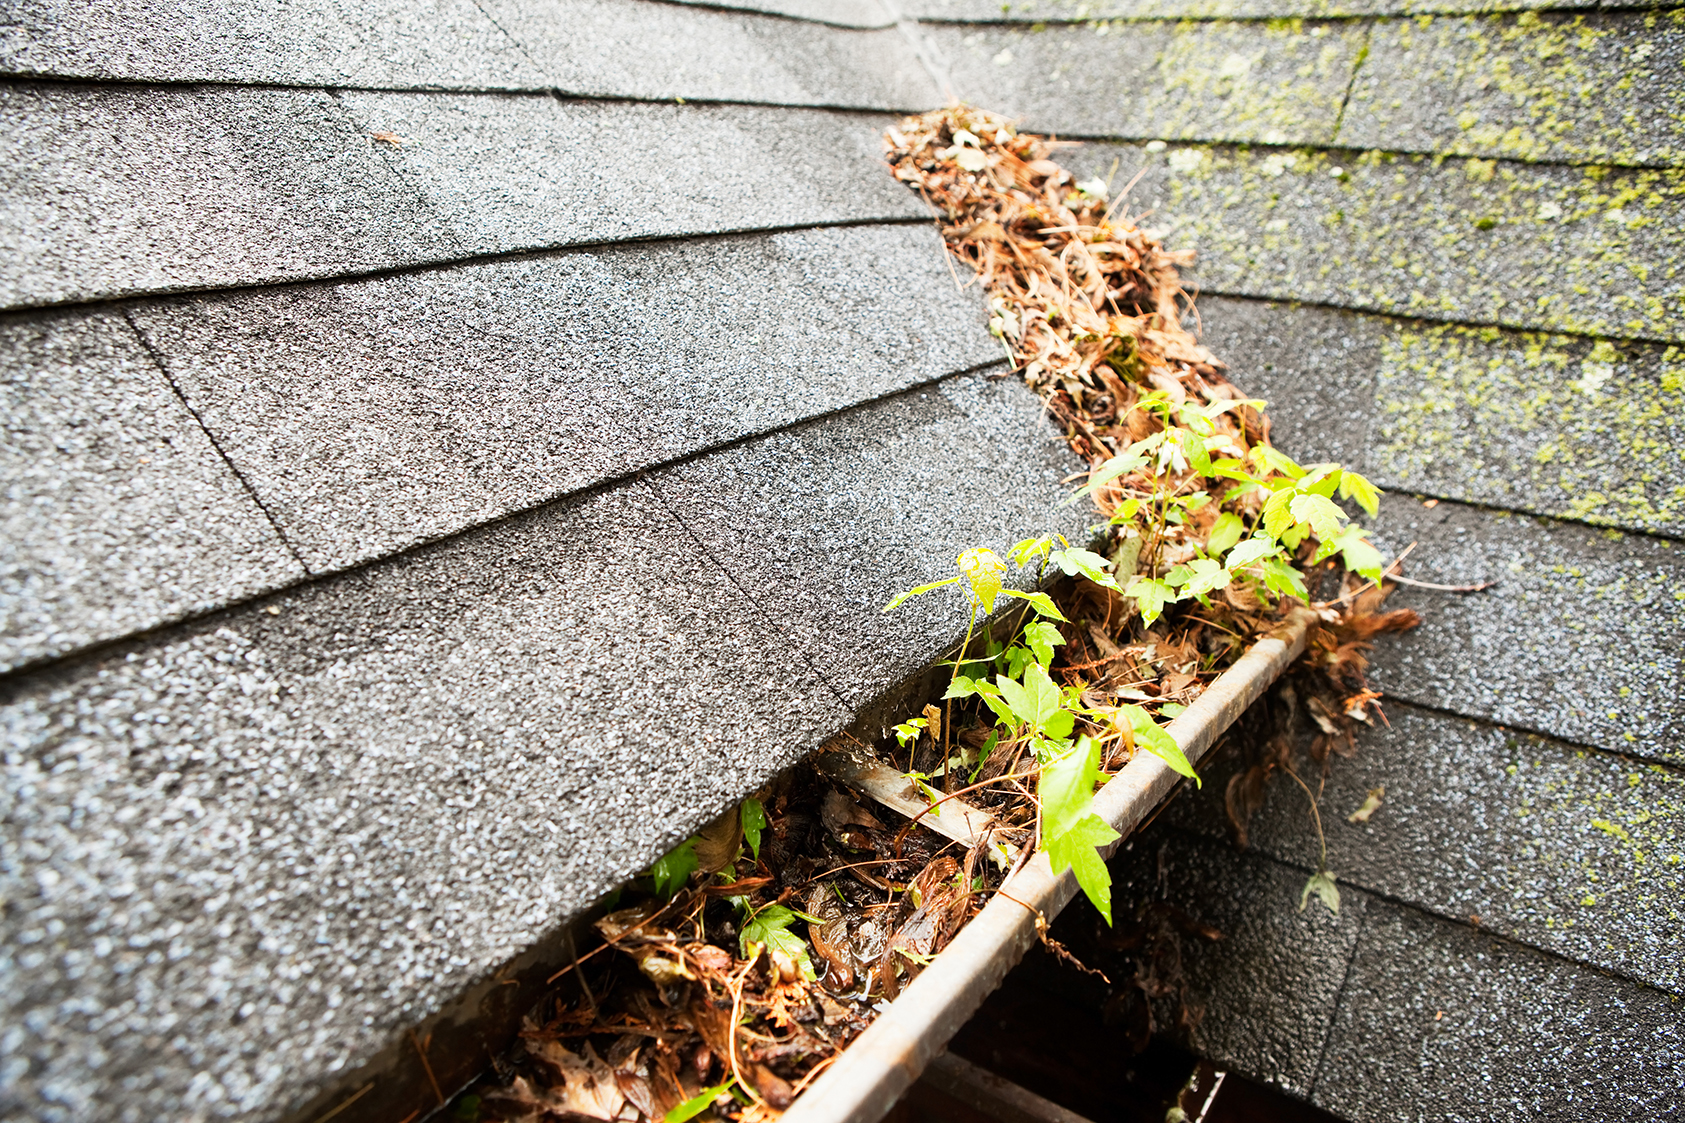 6 Common Gutter Problems Every Homeowner Should Be Aware Of